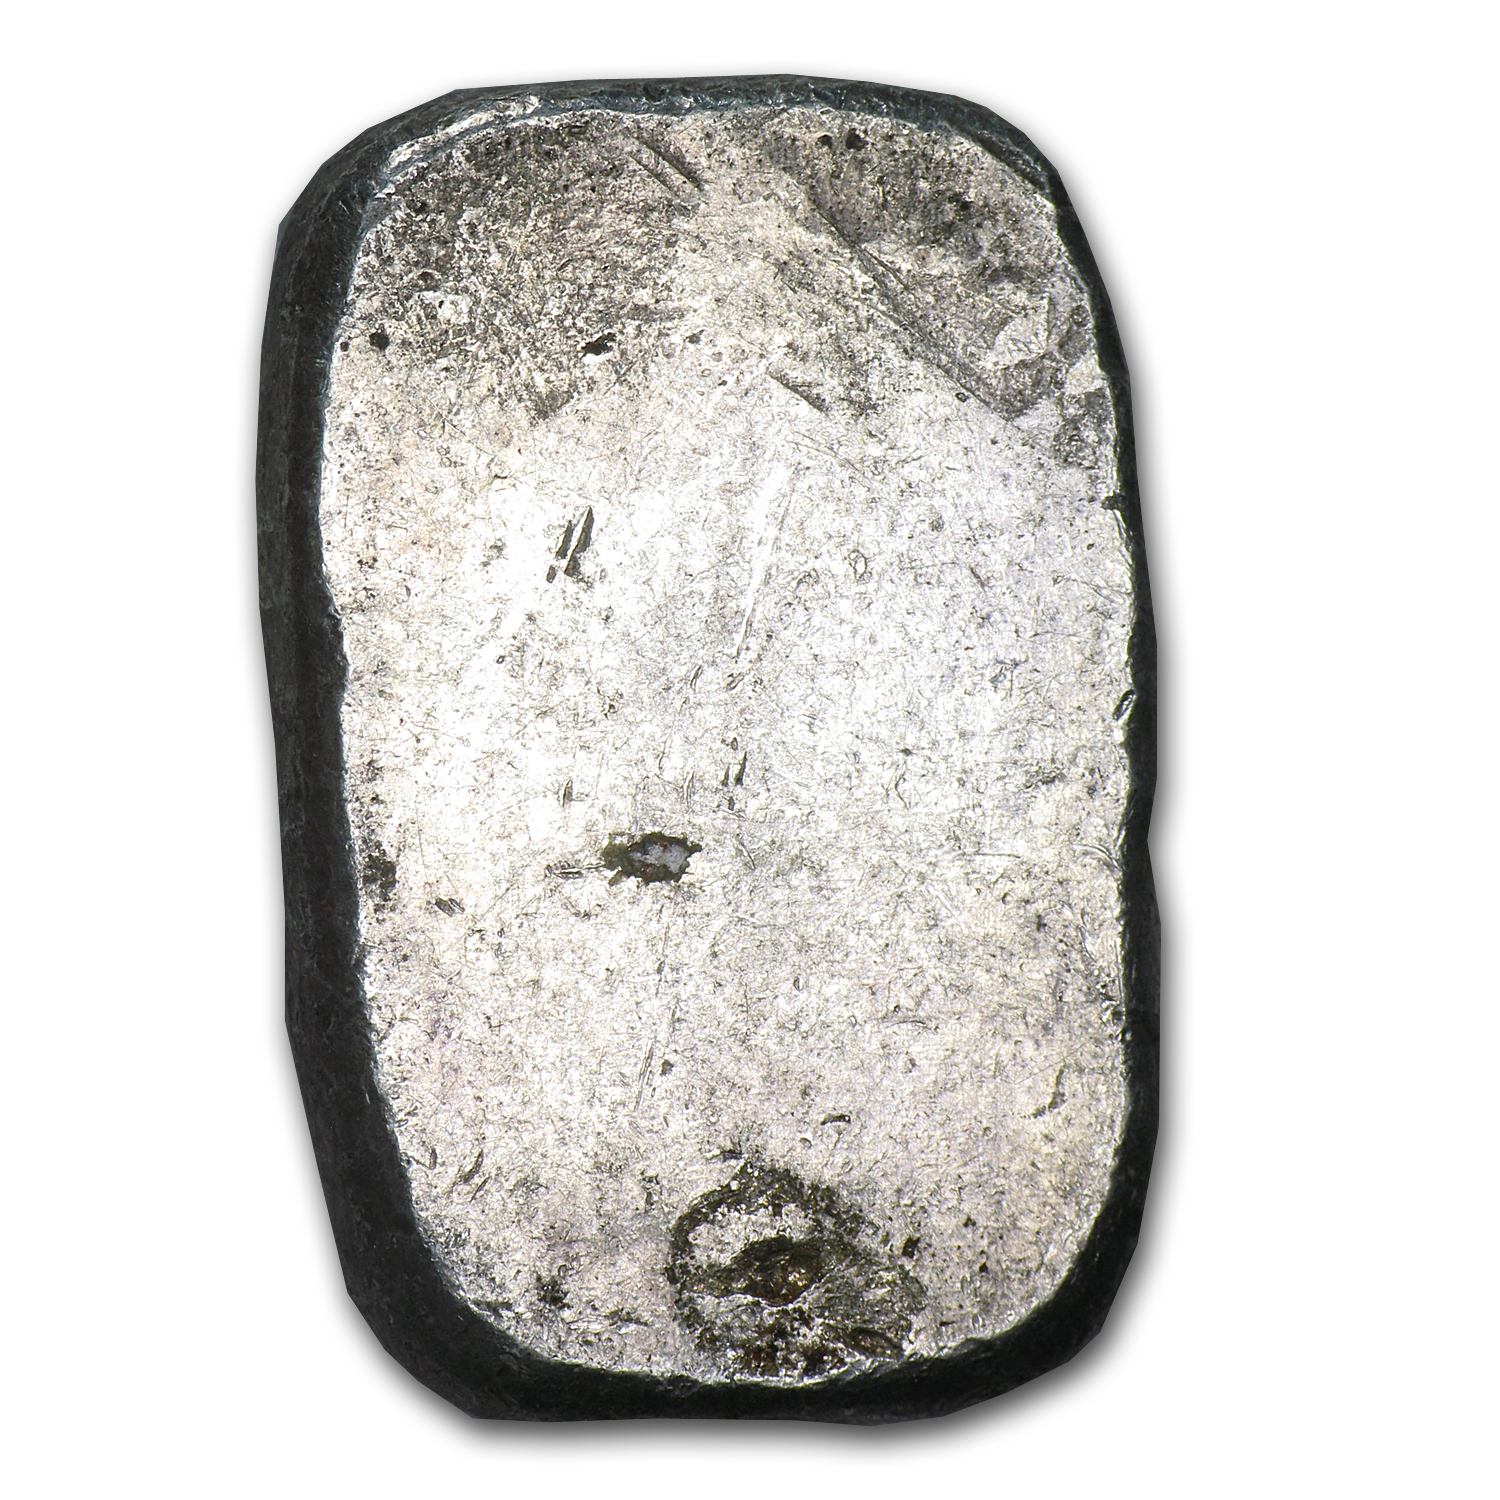 1 oz Silver Bar - Old Norse Viking Ingot Bar